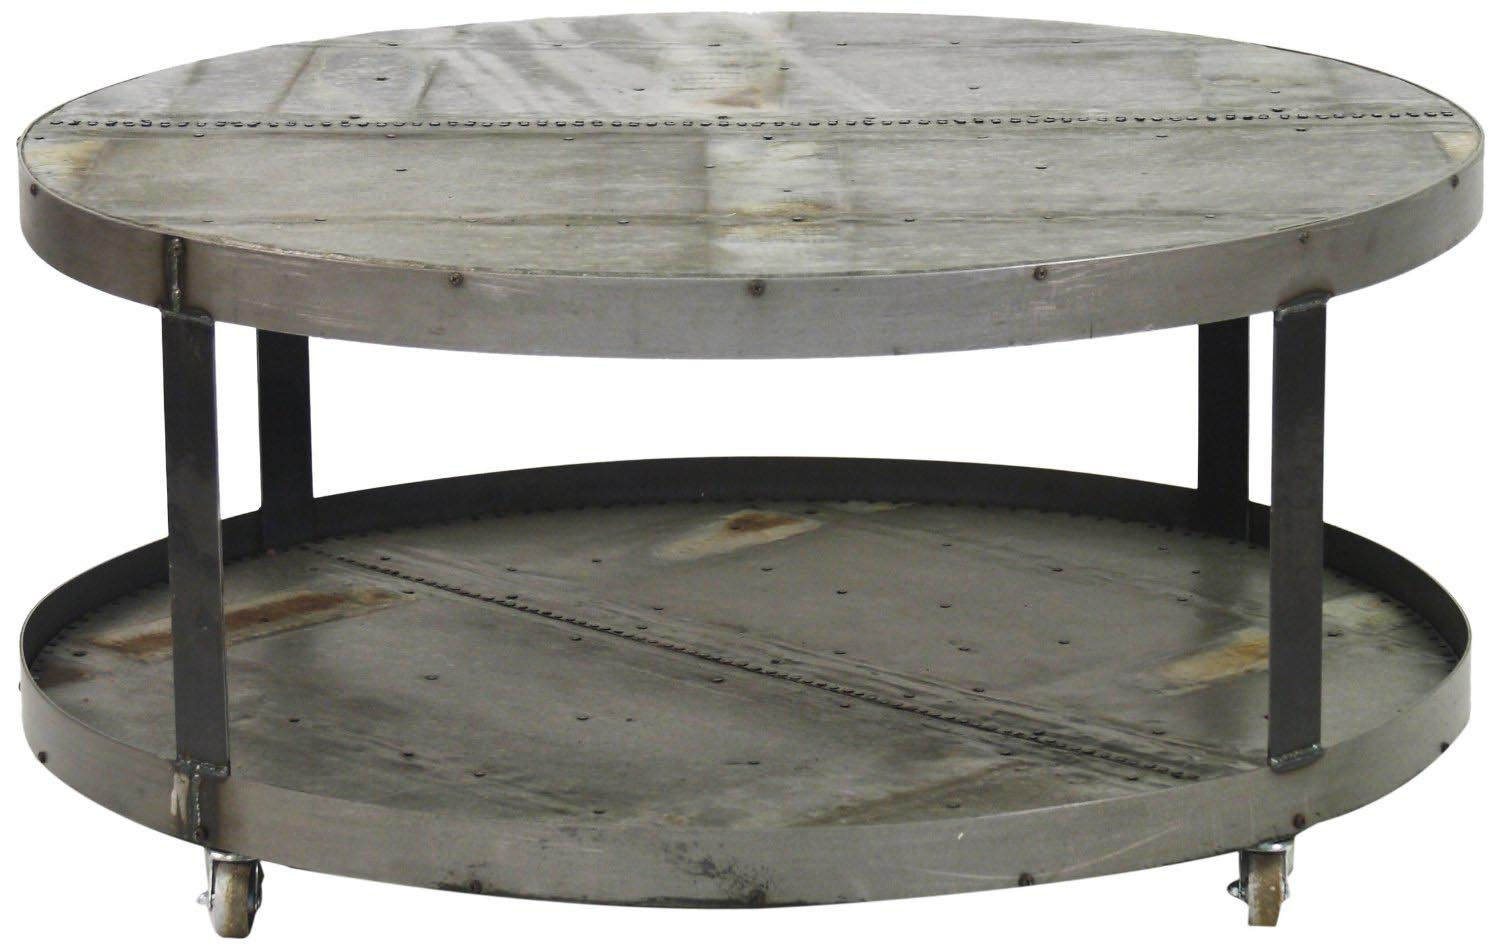 Oversized round coffee table coffee table design ideas Round espresso coffee table